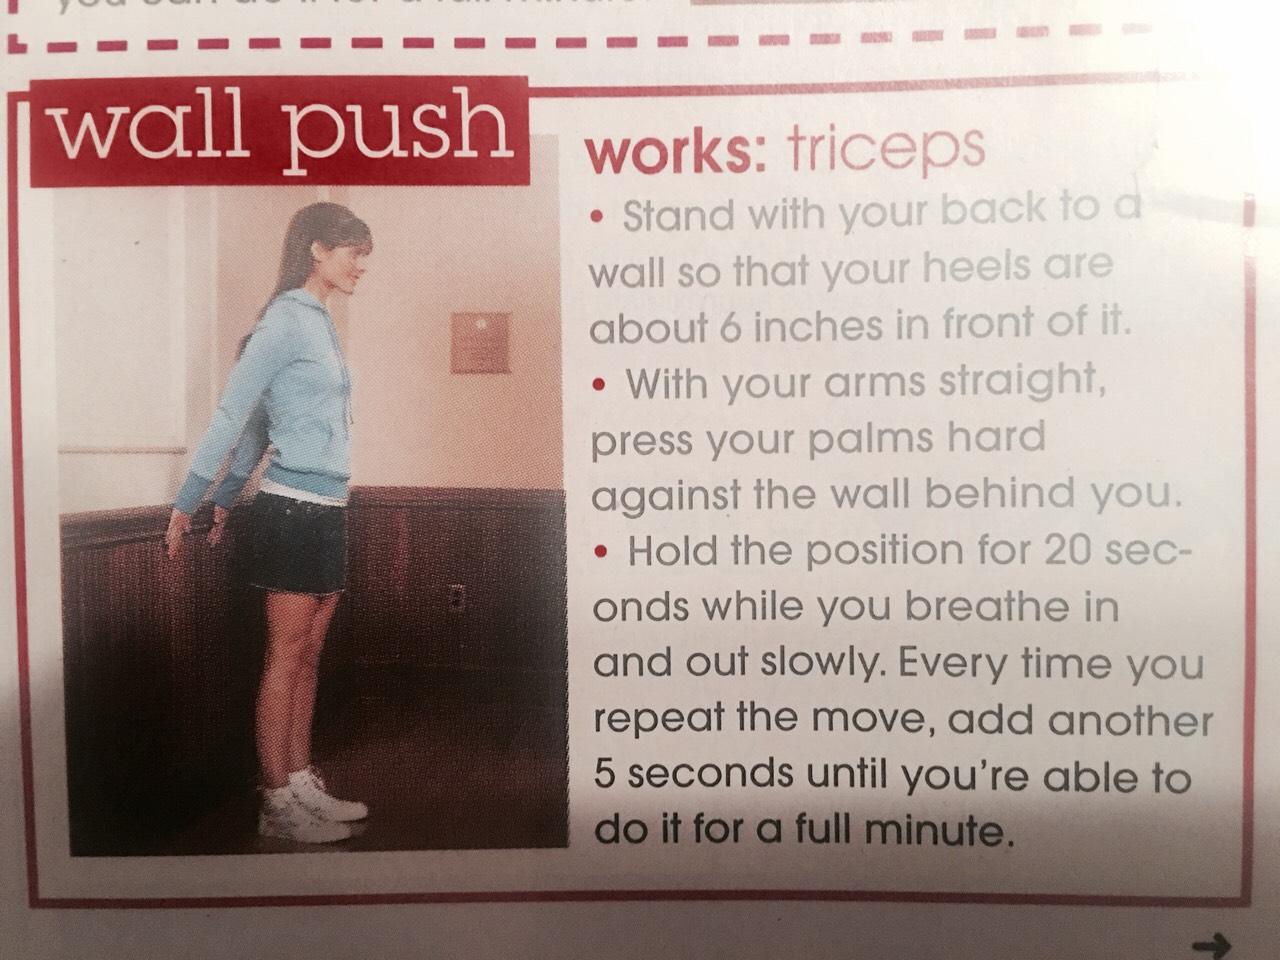 Wall Push strenghens triceps